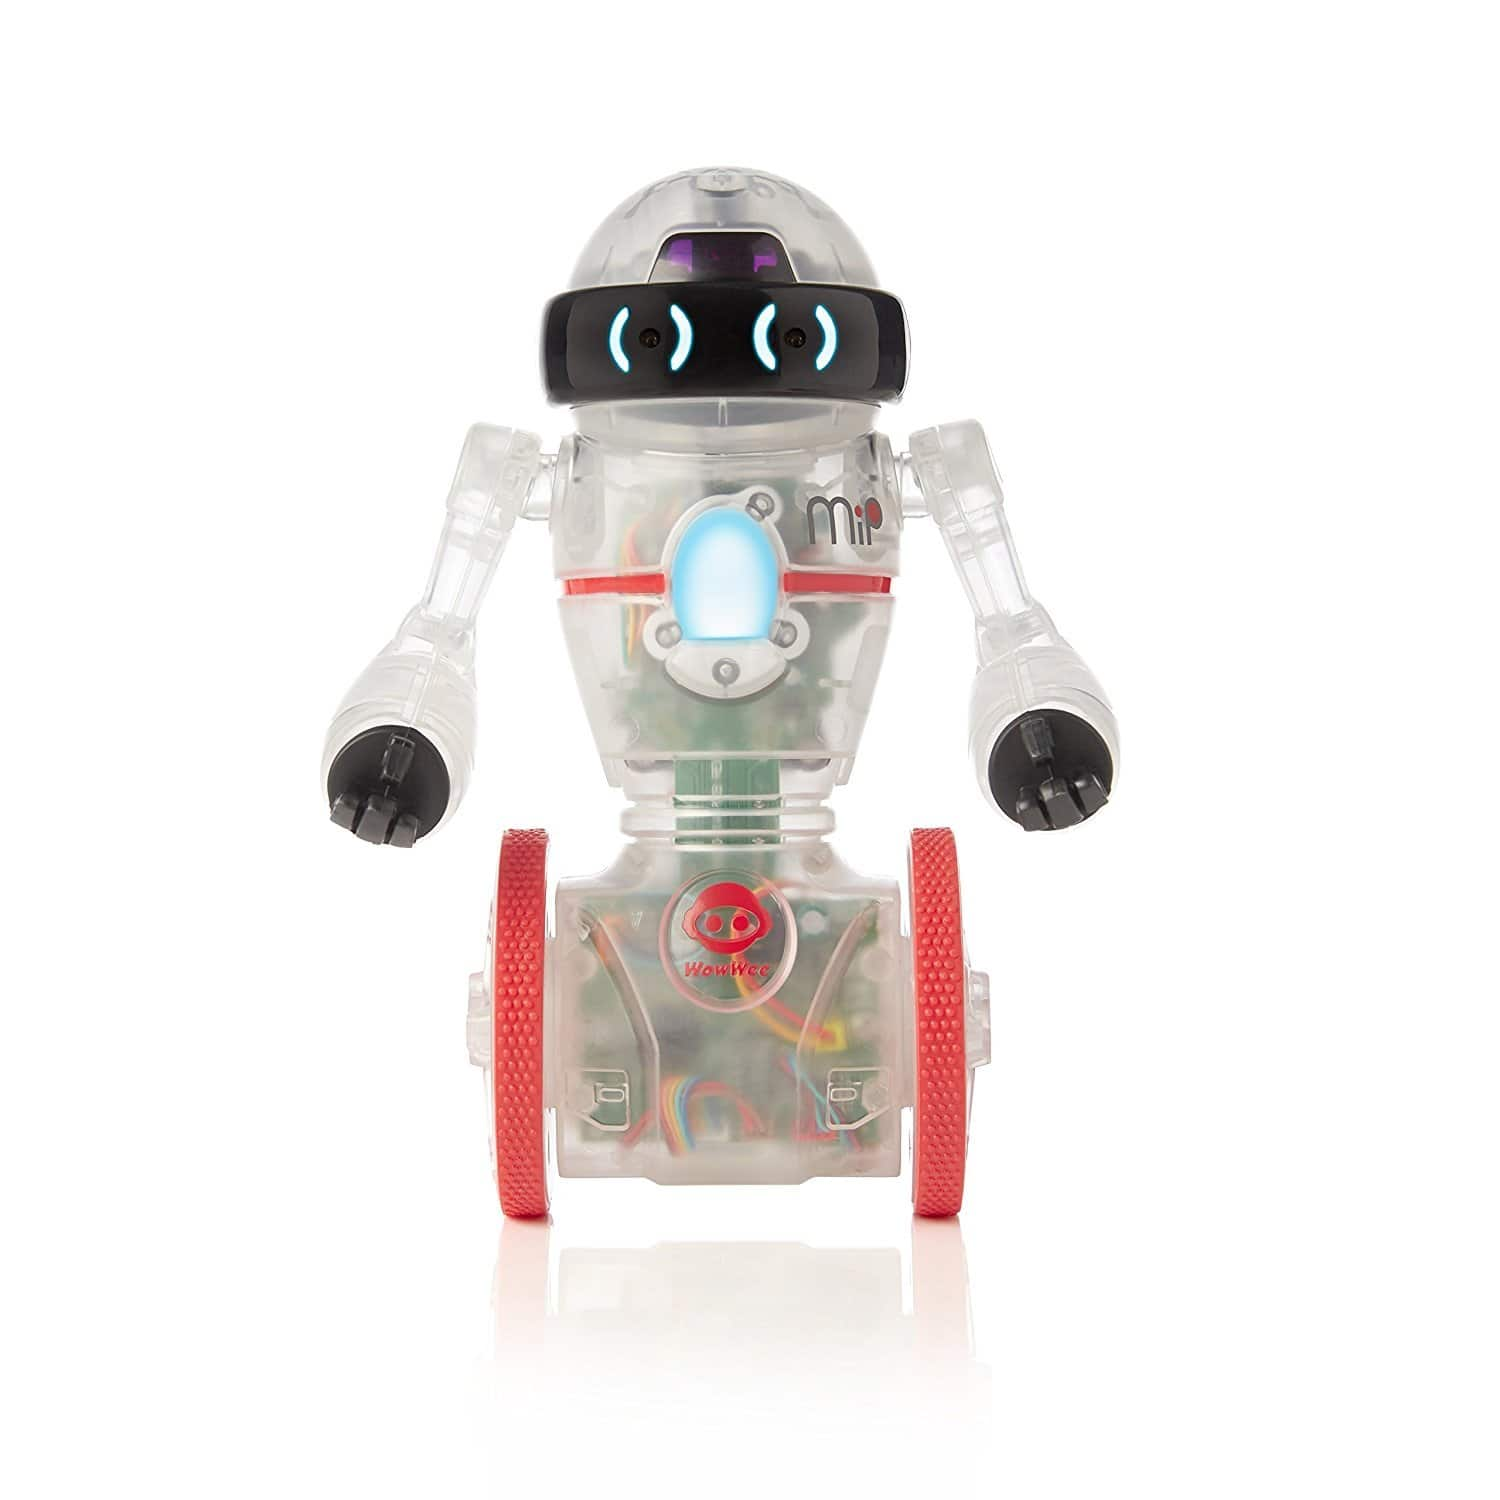 WowWee Coder MiP The STEM-Based Toy Robot (Transparent) $64.31 + Free shipping